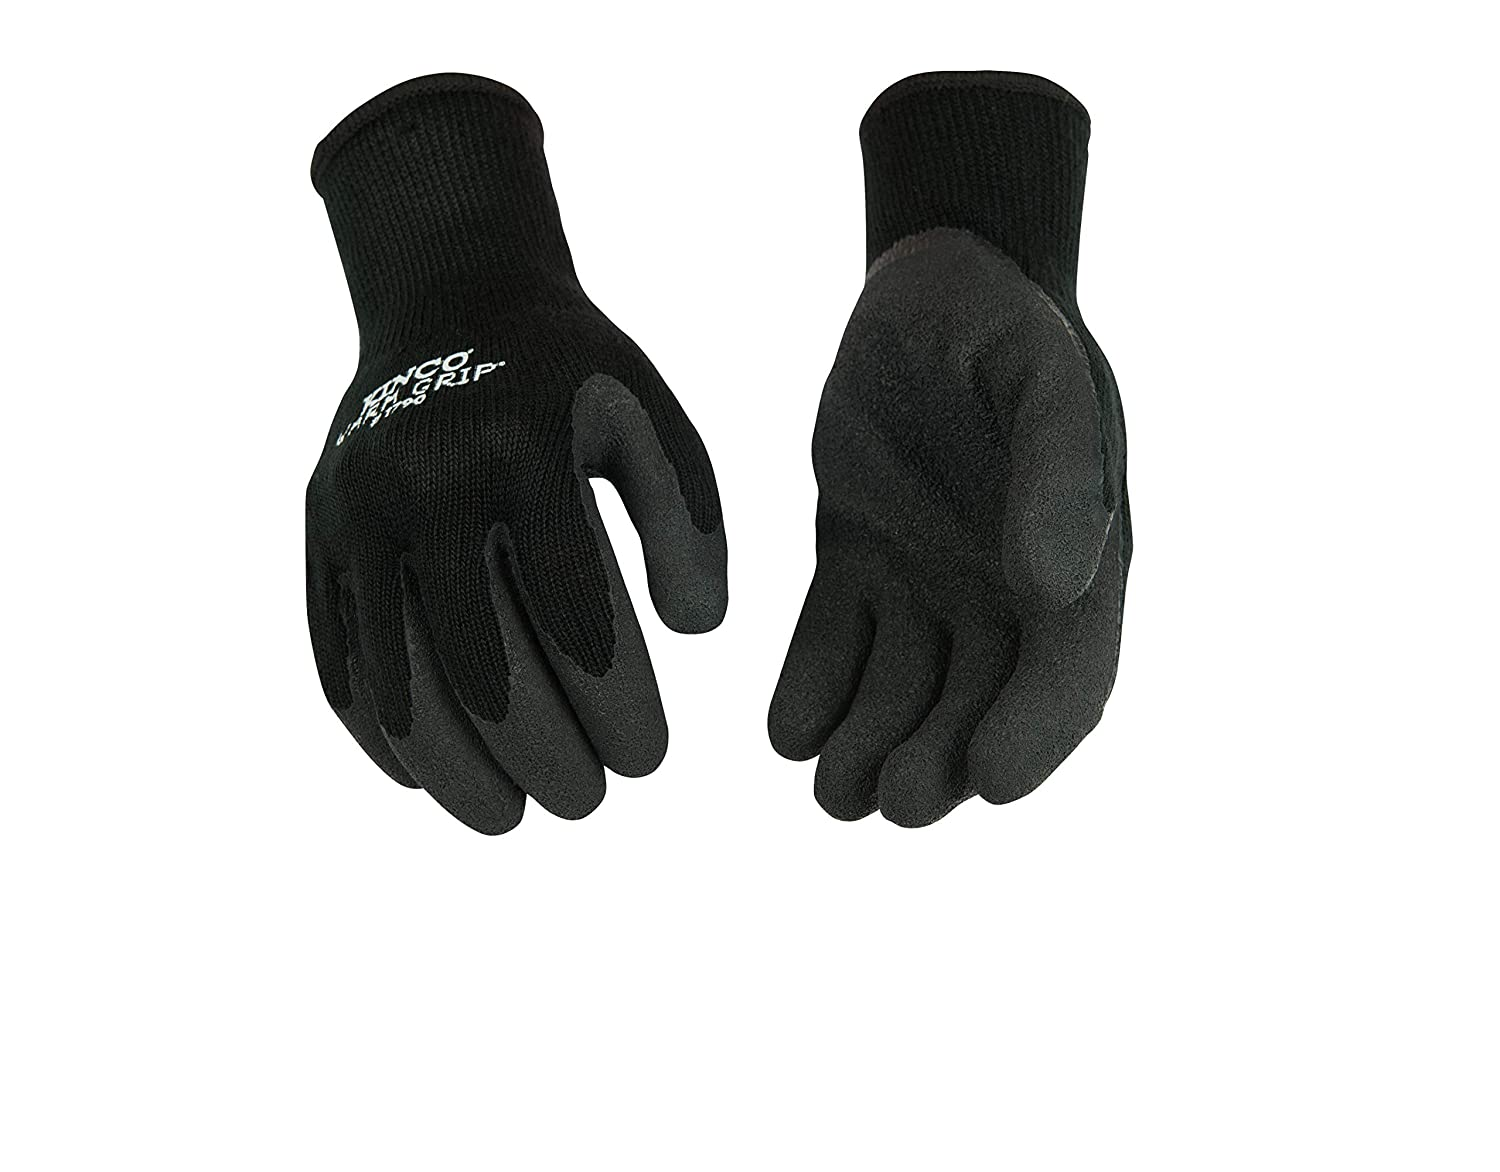 B0038KBN14 Kinco Warm Grip Thermal Knit Shell & Latex Palm 71FXYEngmaL